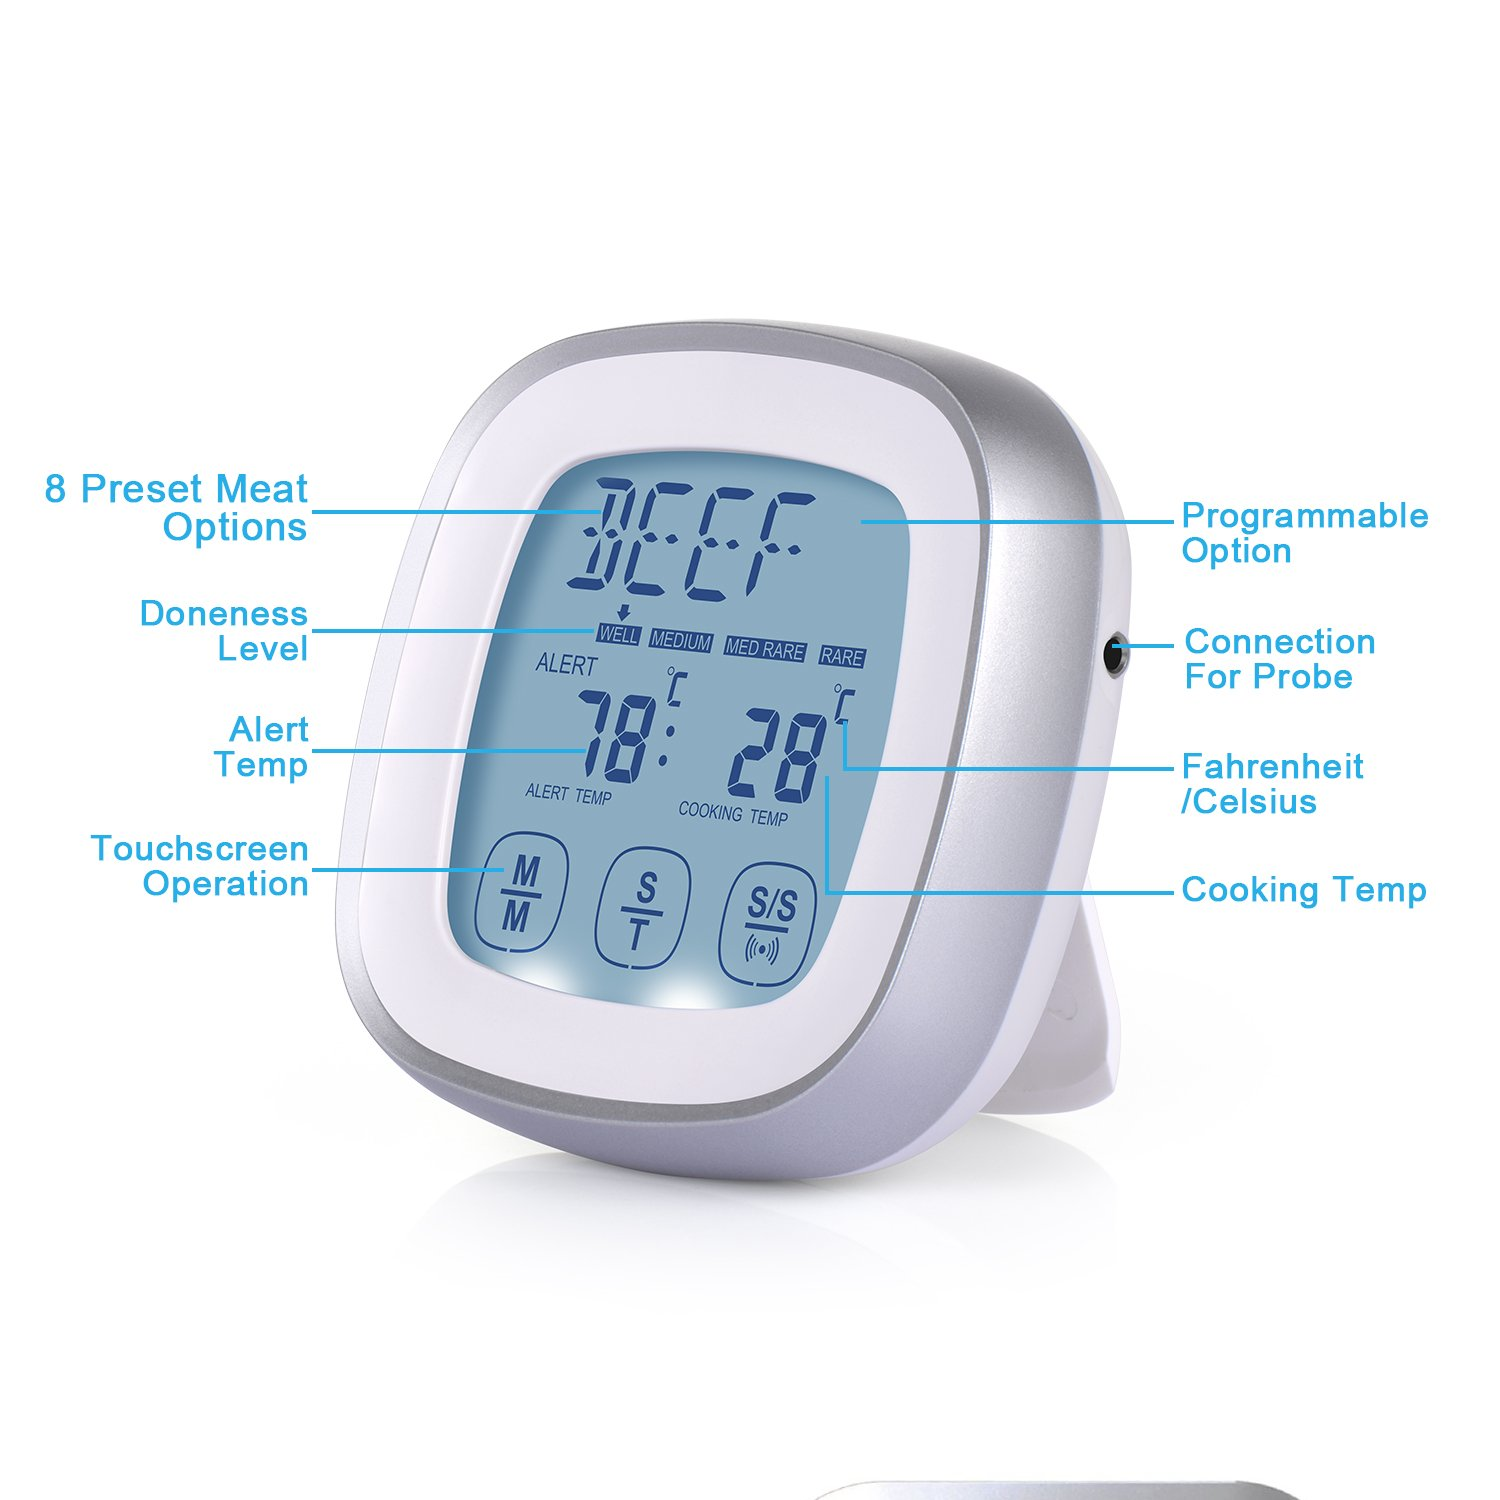 Amazon.com: Adoric Touchscreen Digital Meat Thermometer with Timer ...